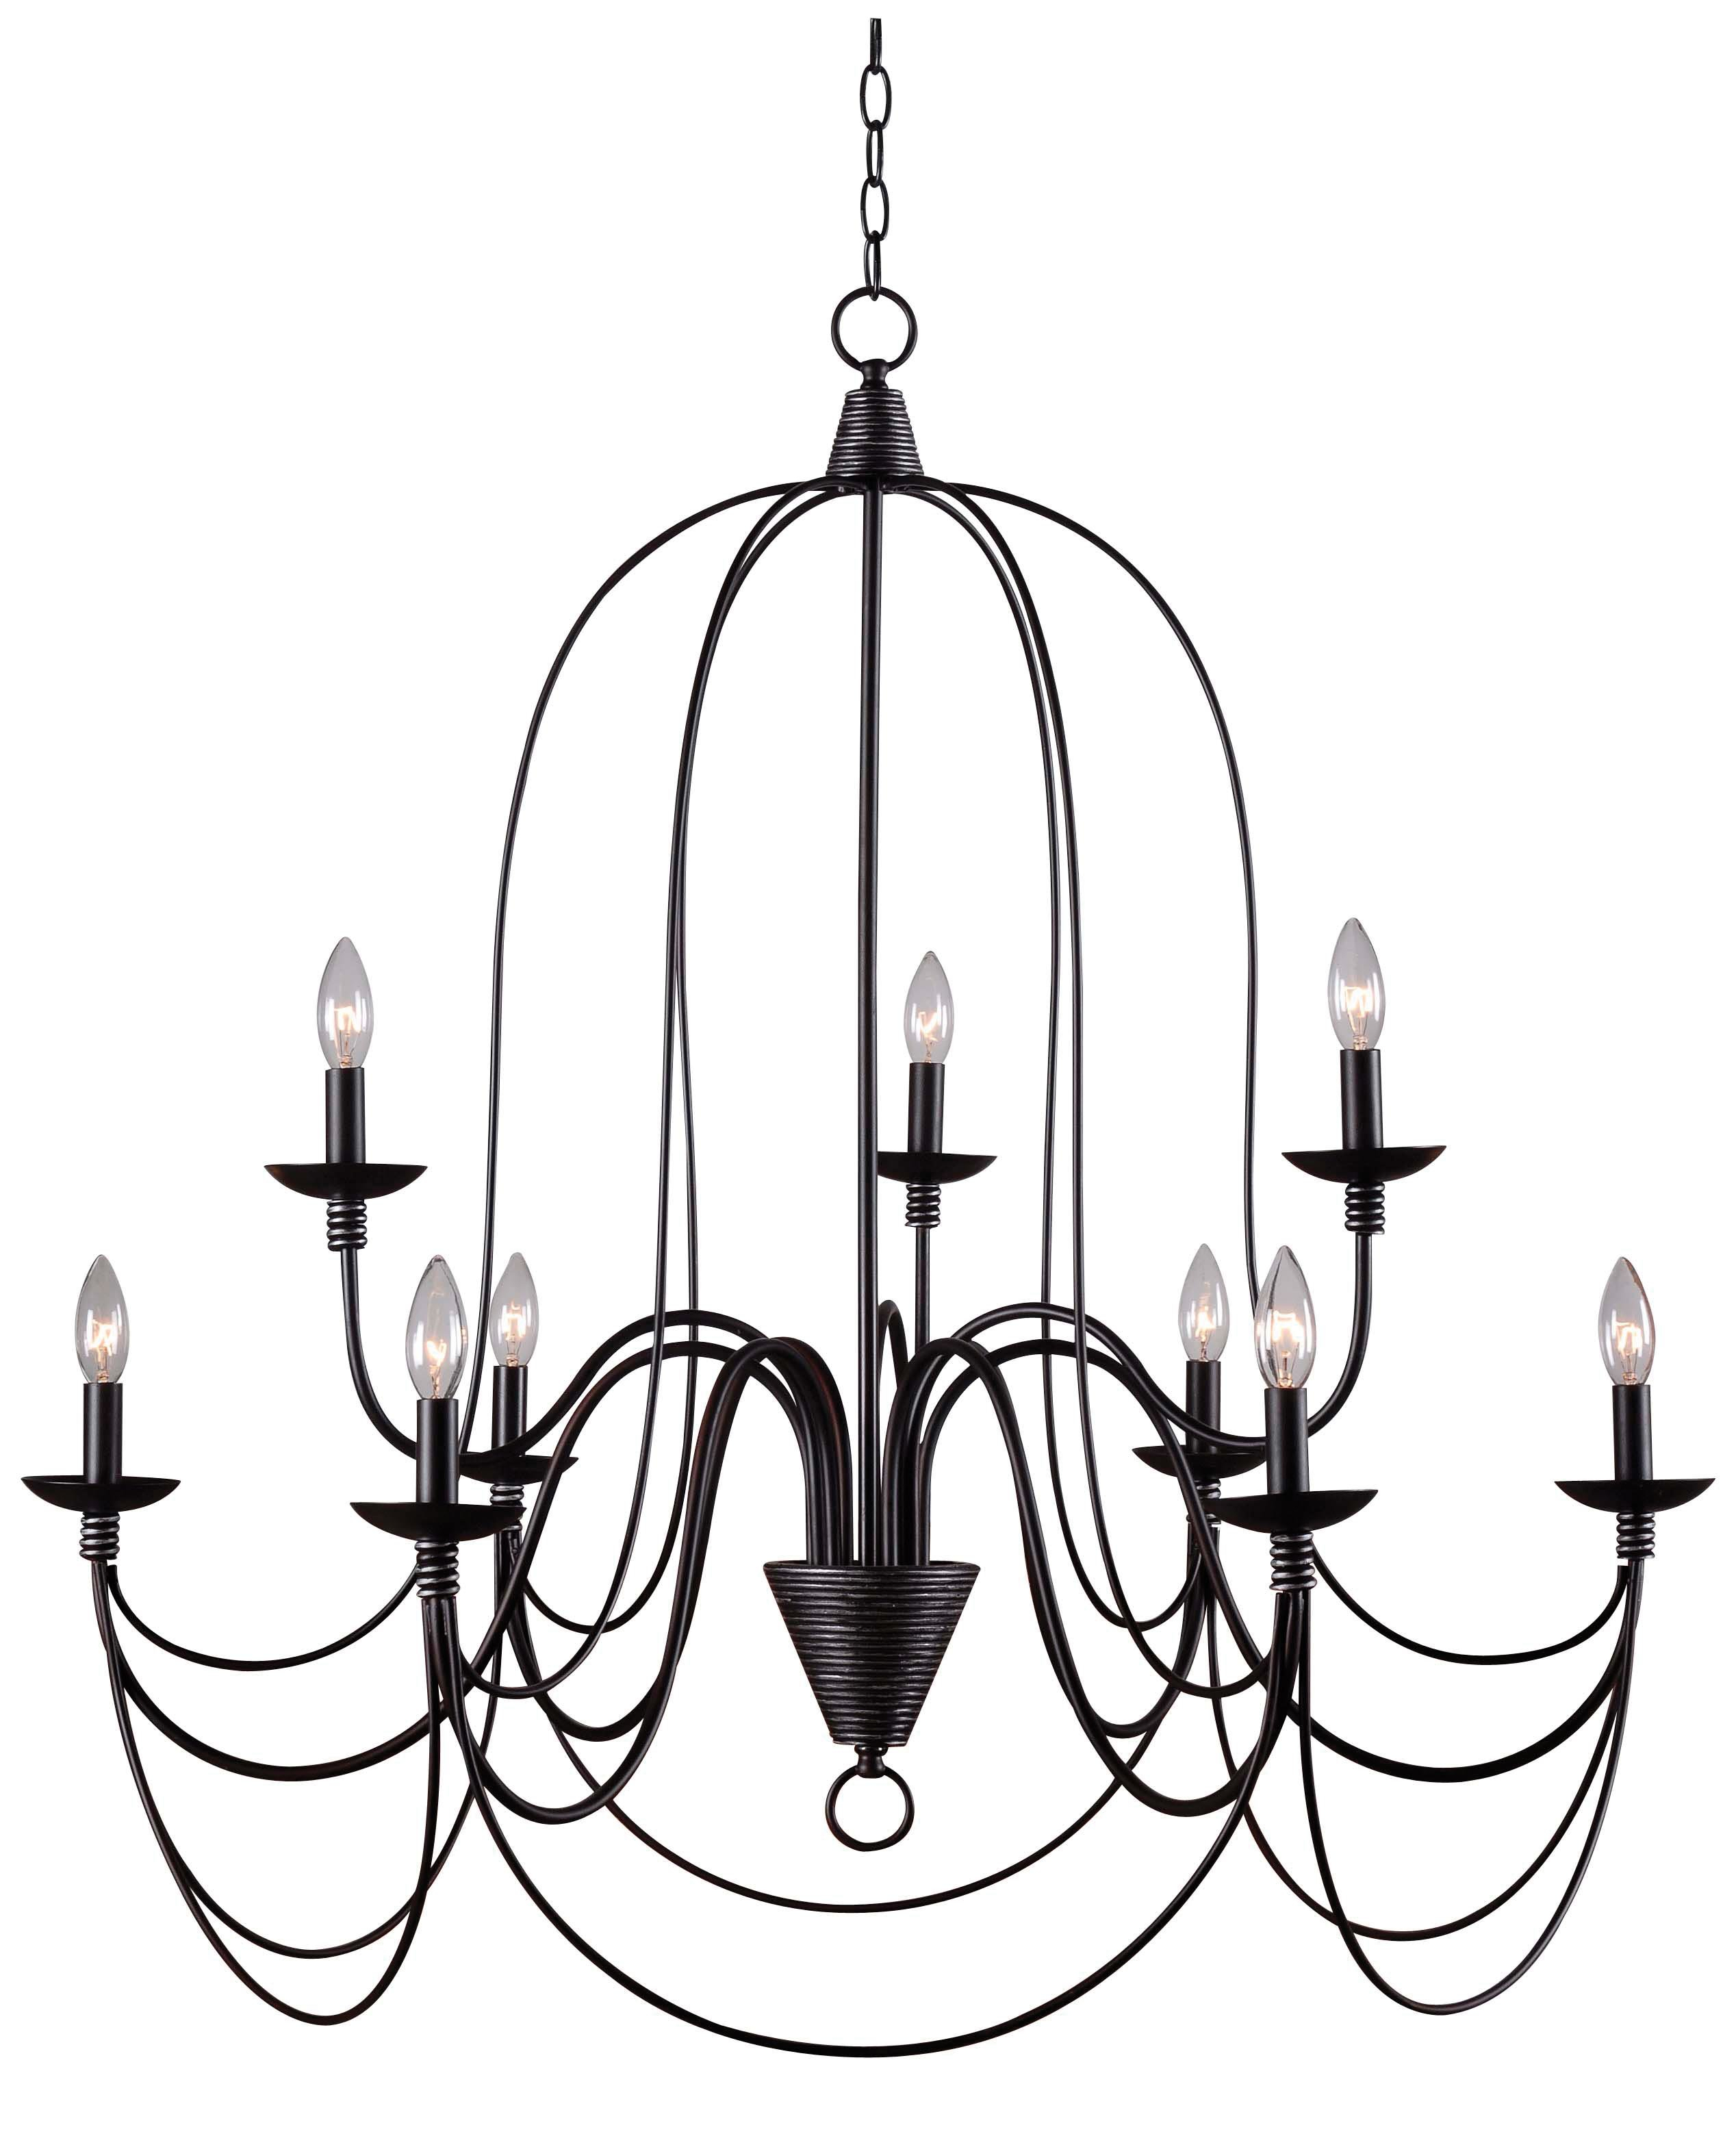 Kollman 9 Light Candle Style Chandelier Intended For Giverny 9 Light Candle Style Chandeliers (View 6 of 30)